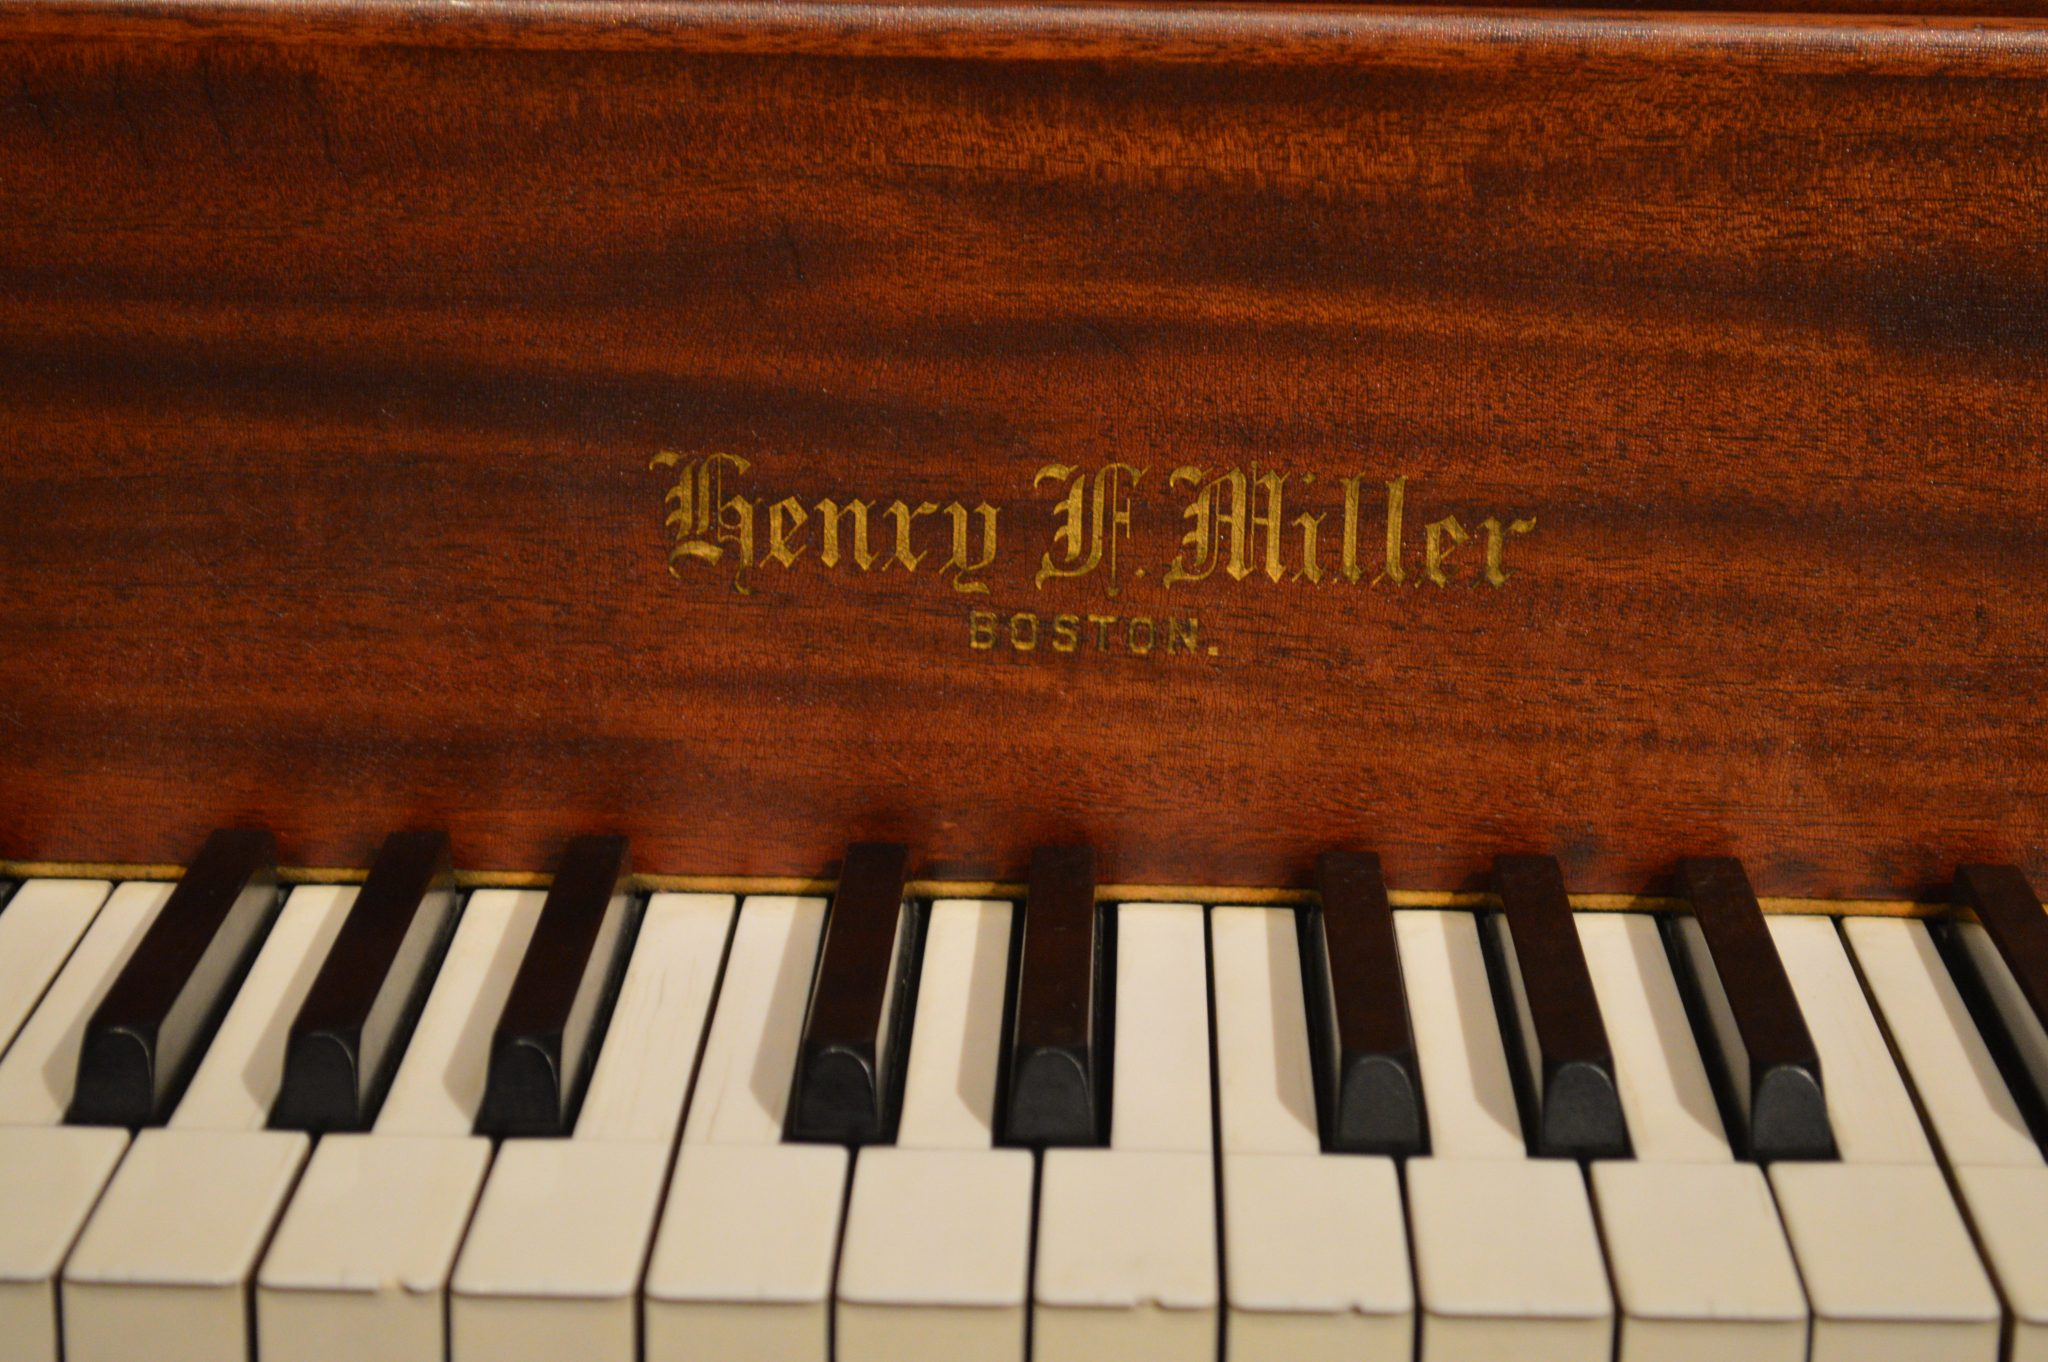 Des Moines Piano Sales - Quality used pianos in Des Moines